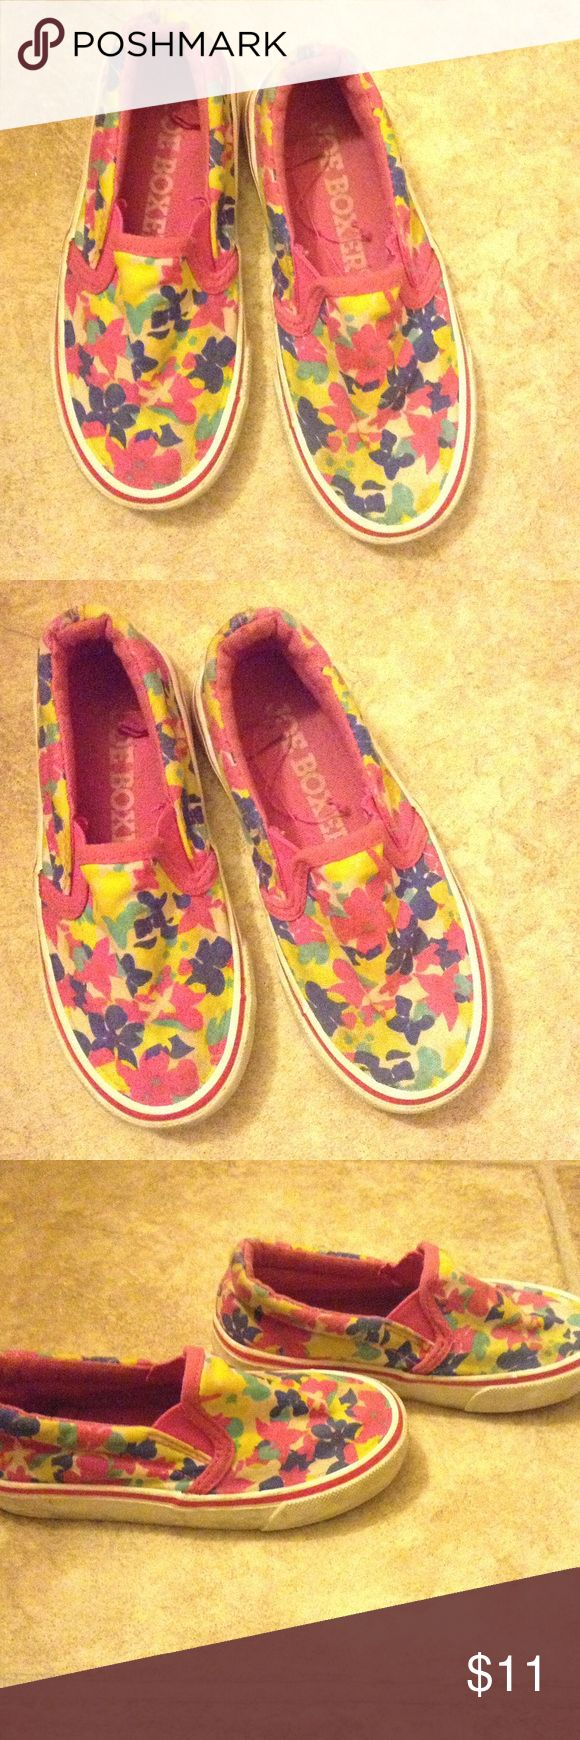 FLORAL FATIGUE JOE BOXER SLIP ONS TODDLER Girls JOE BOXER Floral slip-ONS for Girls; In good used condition. Shoes have been laundered. Not worn much but signs of wear and use are present. Size 9 Joe Boxer Shoes